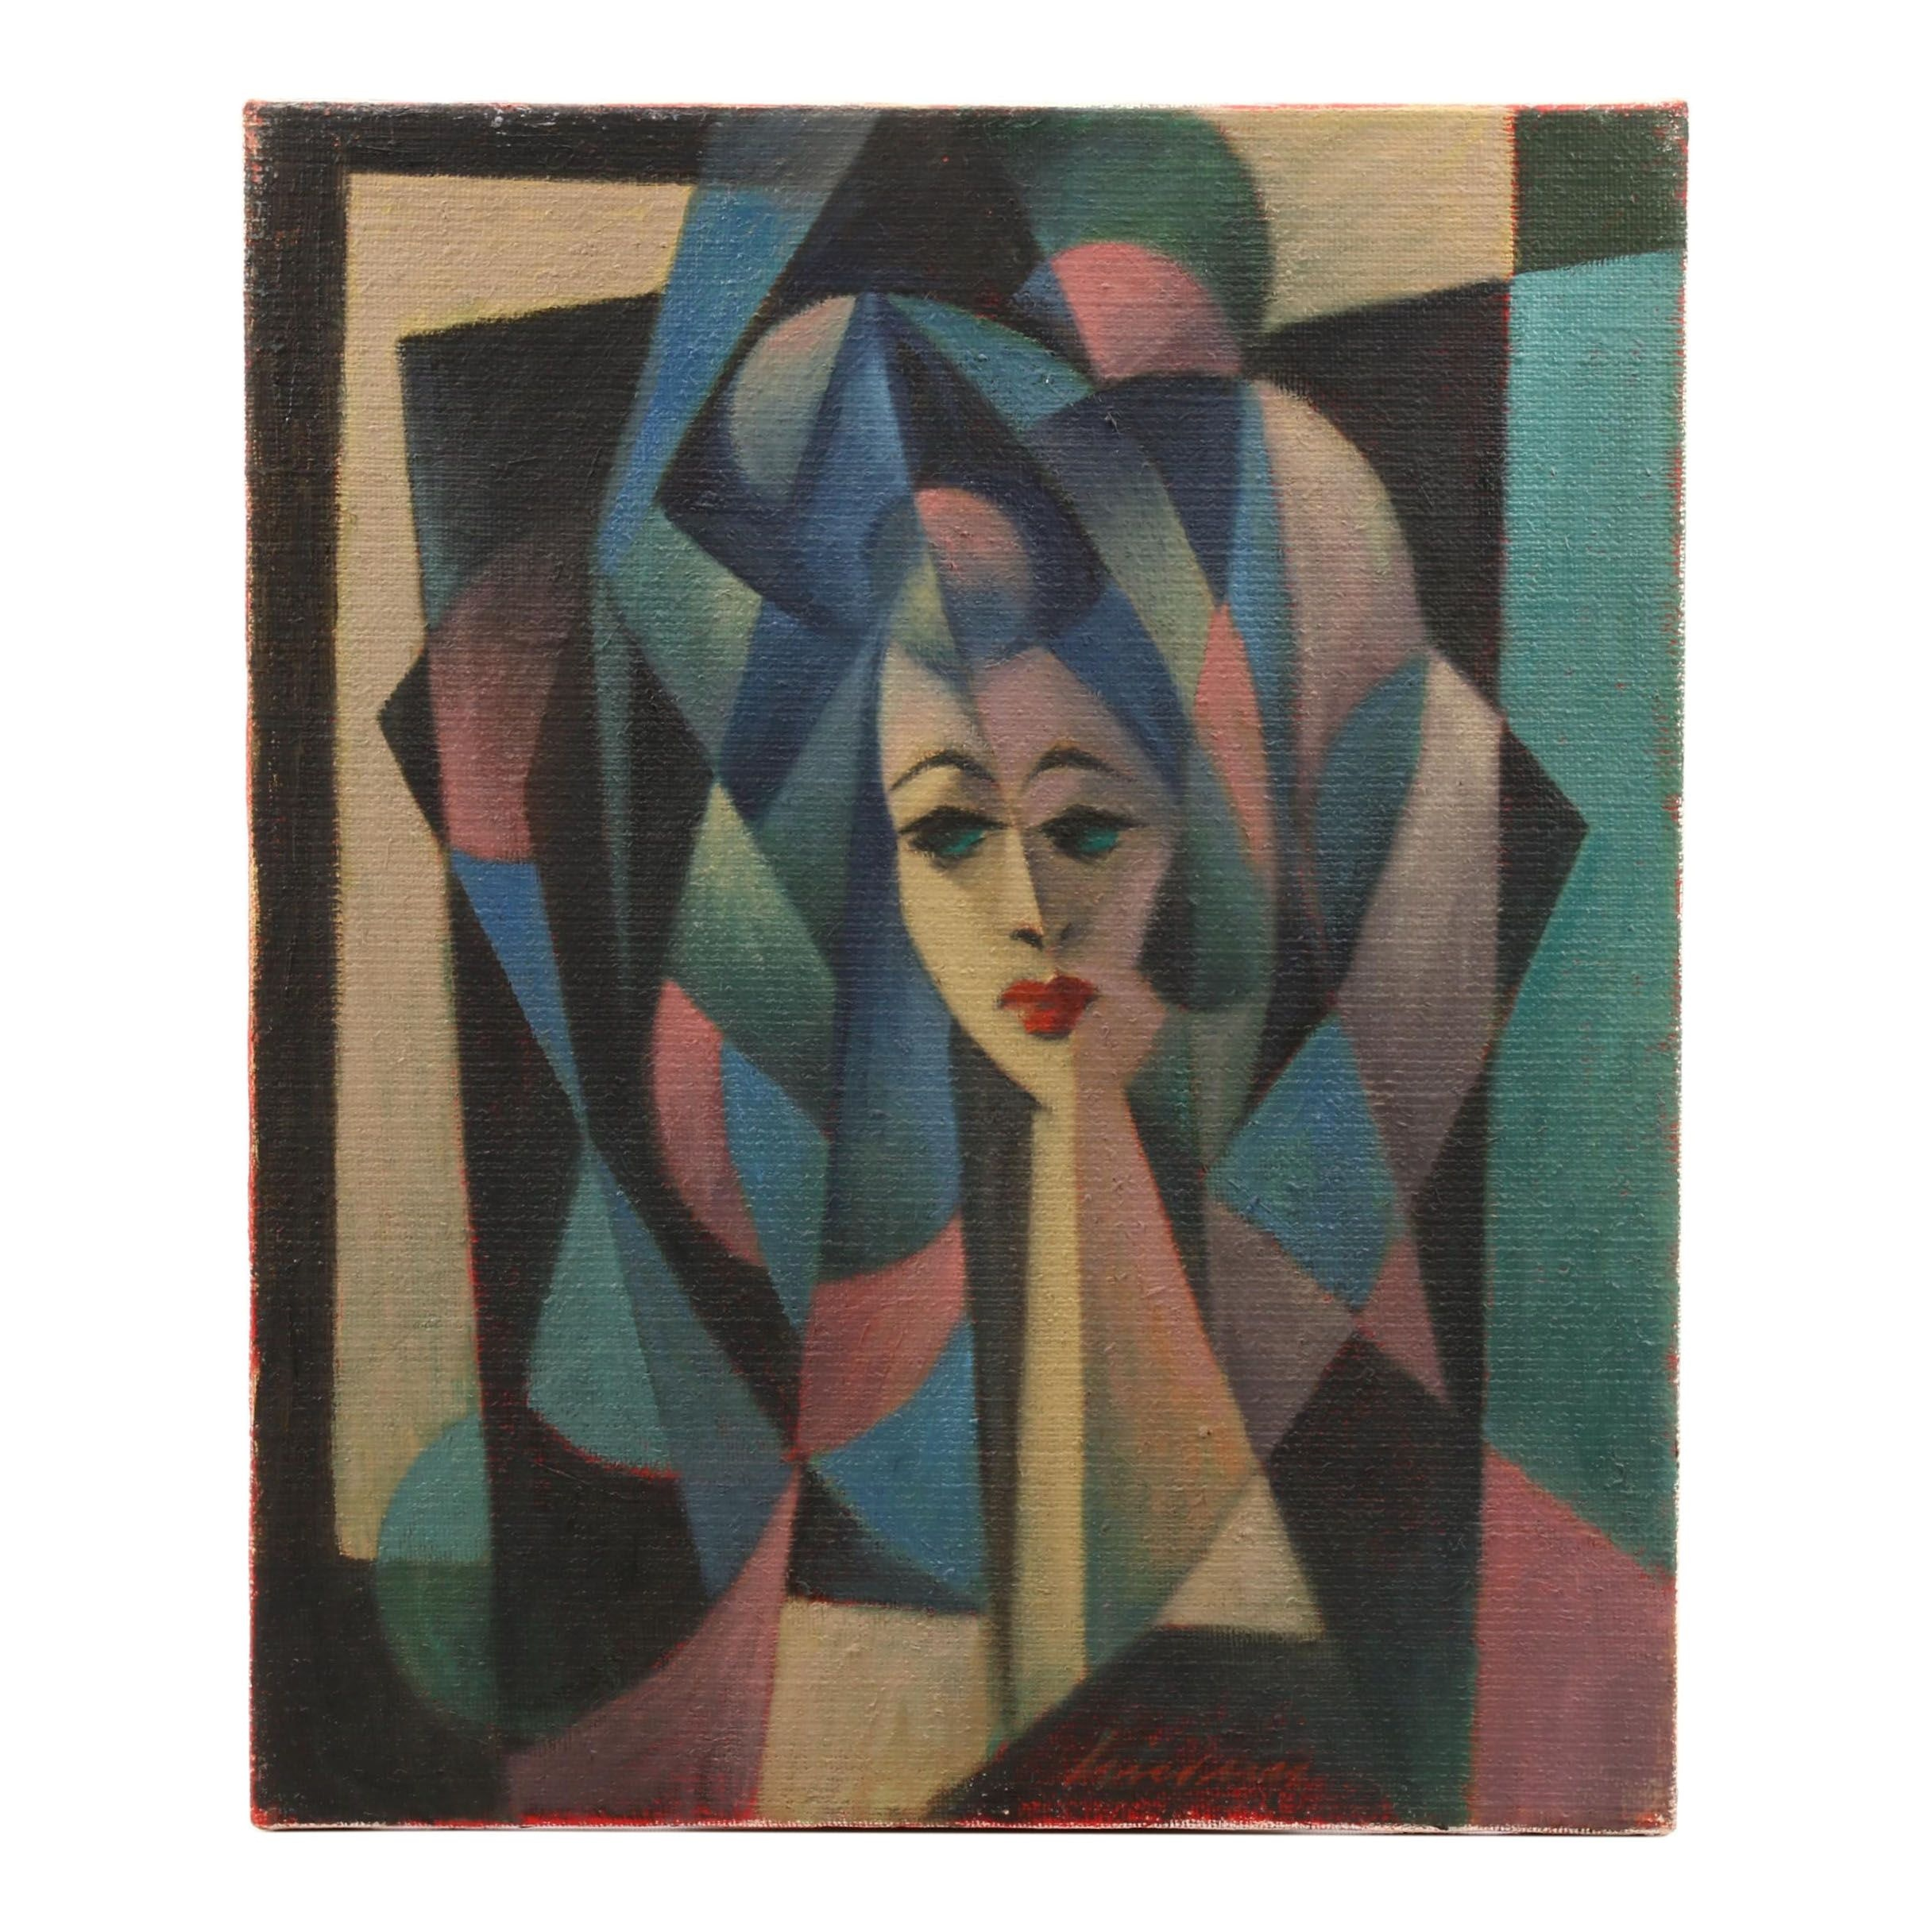 Mid 20th Century Oil Painting of an Abstracted Portrait